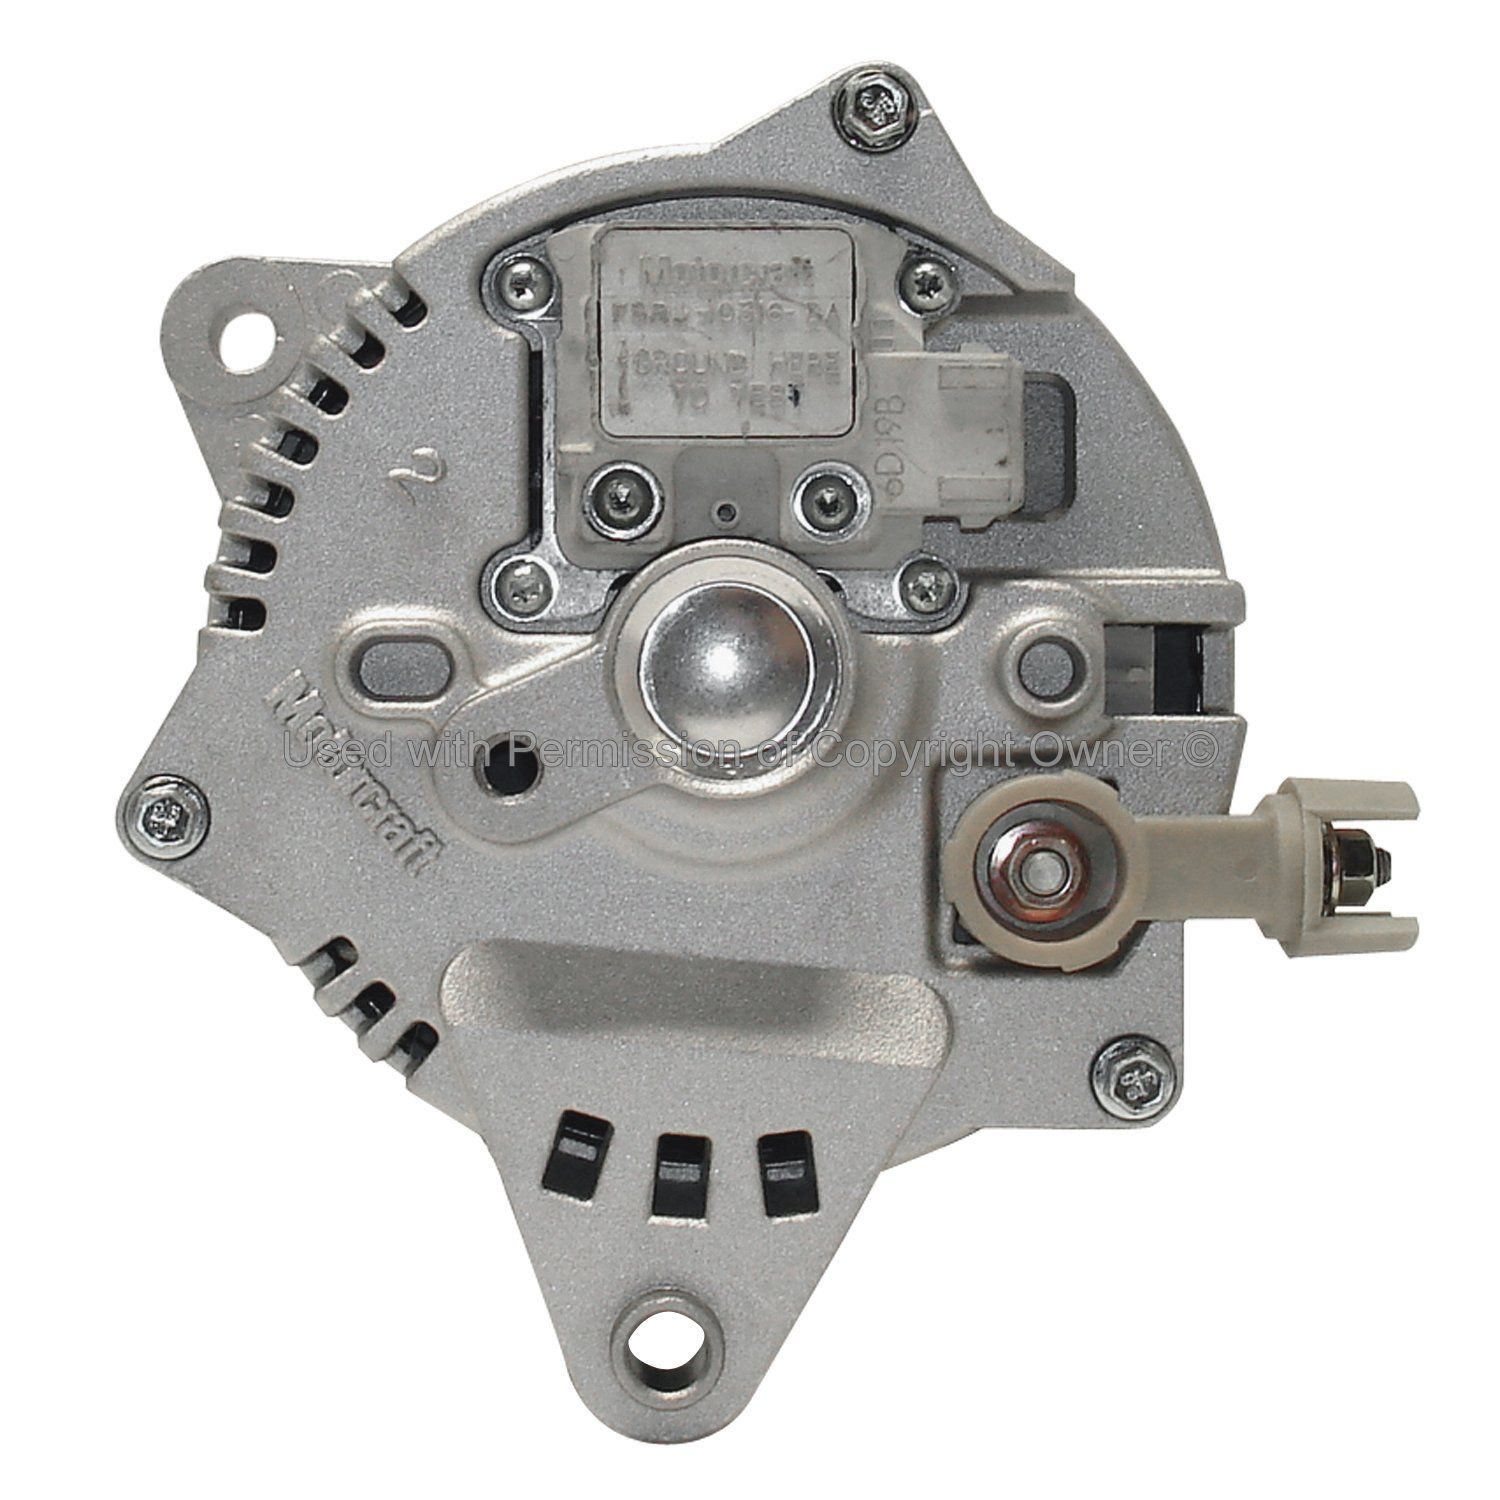 Ford Contour Alternator Replacement Bosch Denso Mpa Remy Go Parts Wiring Diagram 1995 4 Cyl 20l 7789602